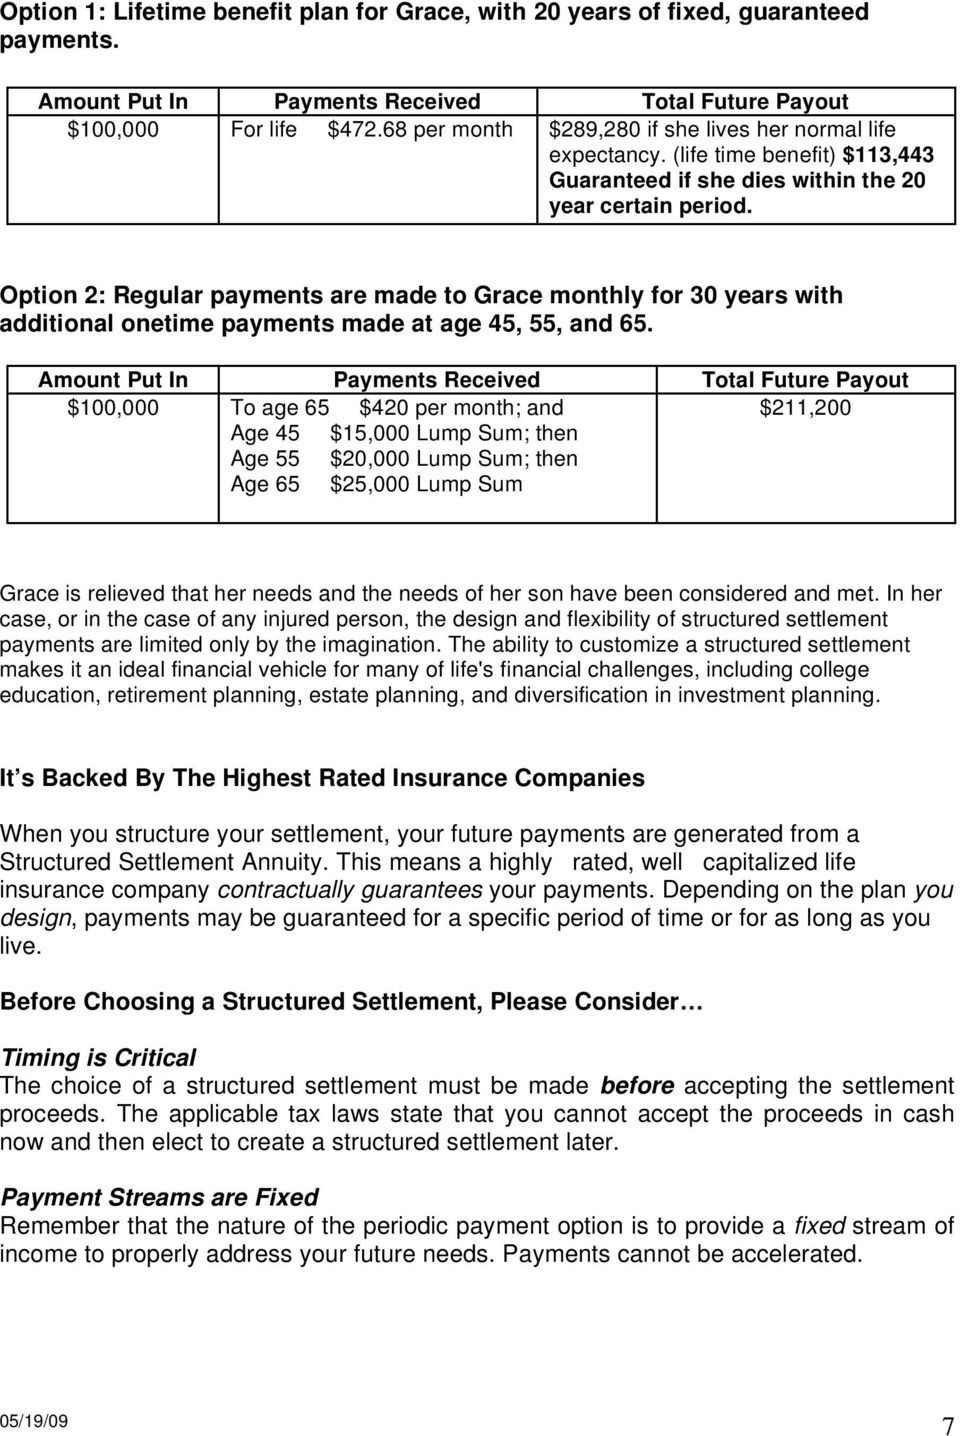 Optin 2: Regular payments are made t Grace mnthly fr 30 years with additinal netime payments made at age 45, 55, and 65.